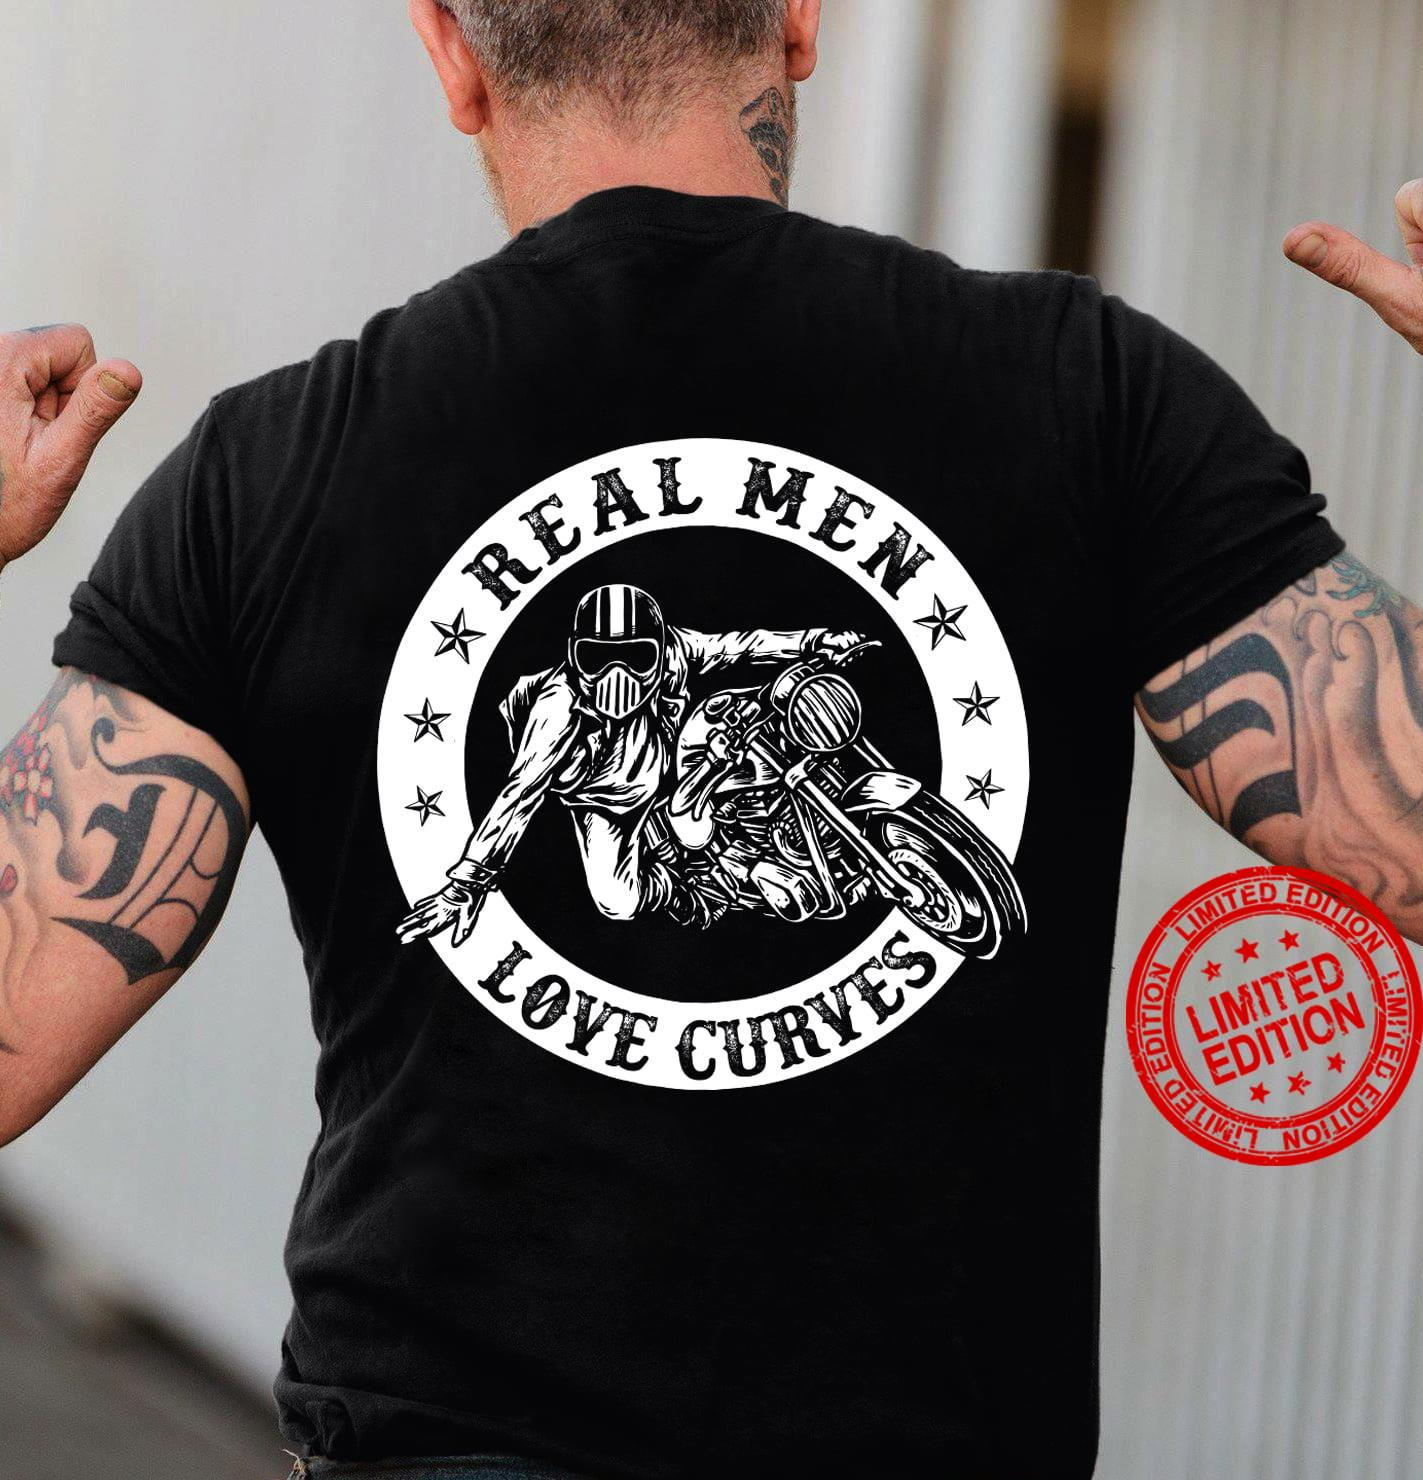 Real Men Love Curves Shirt